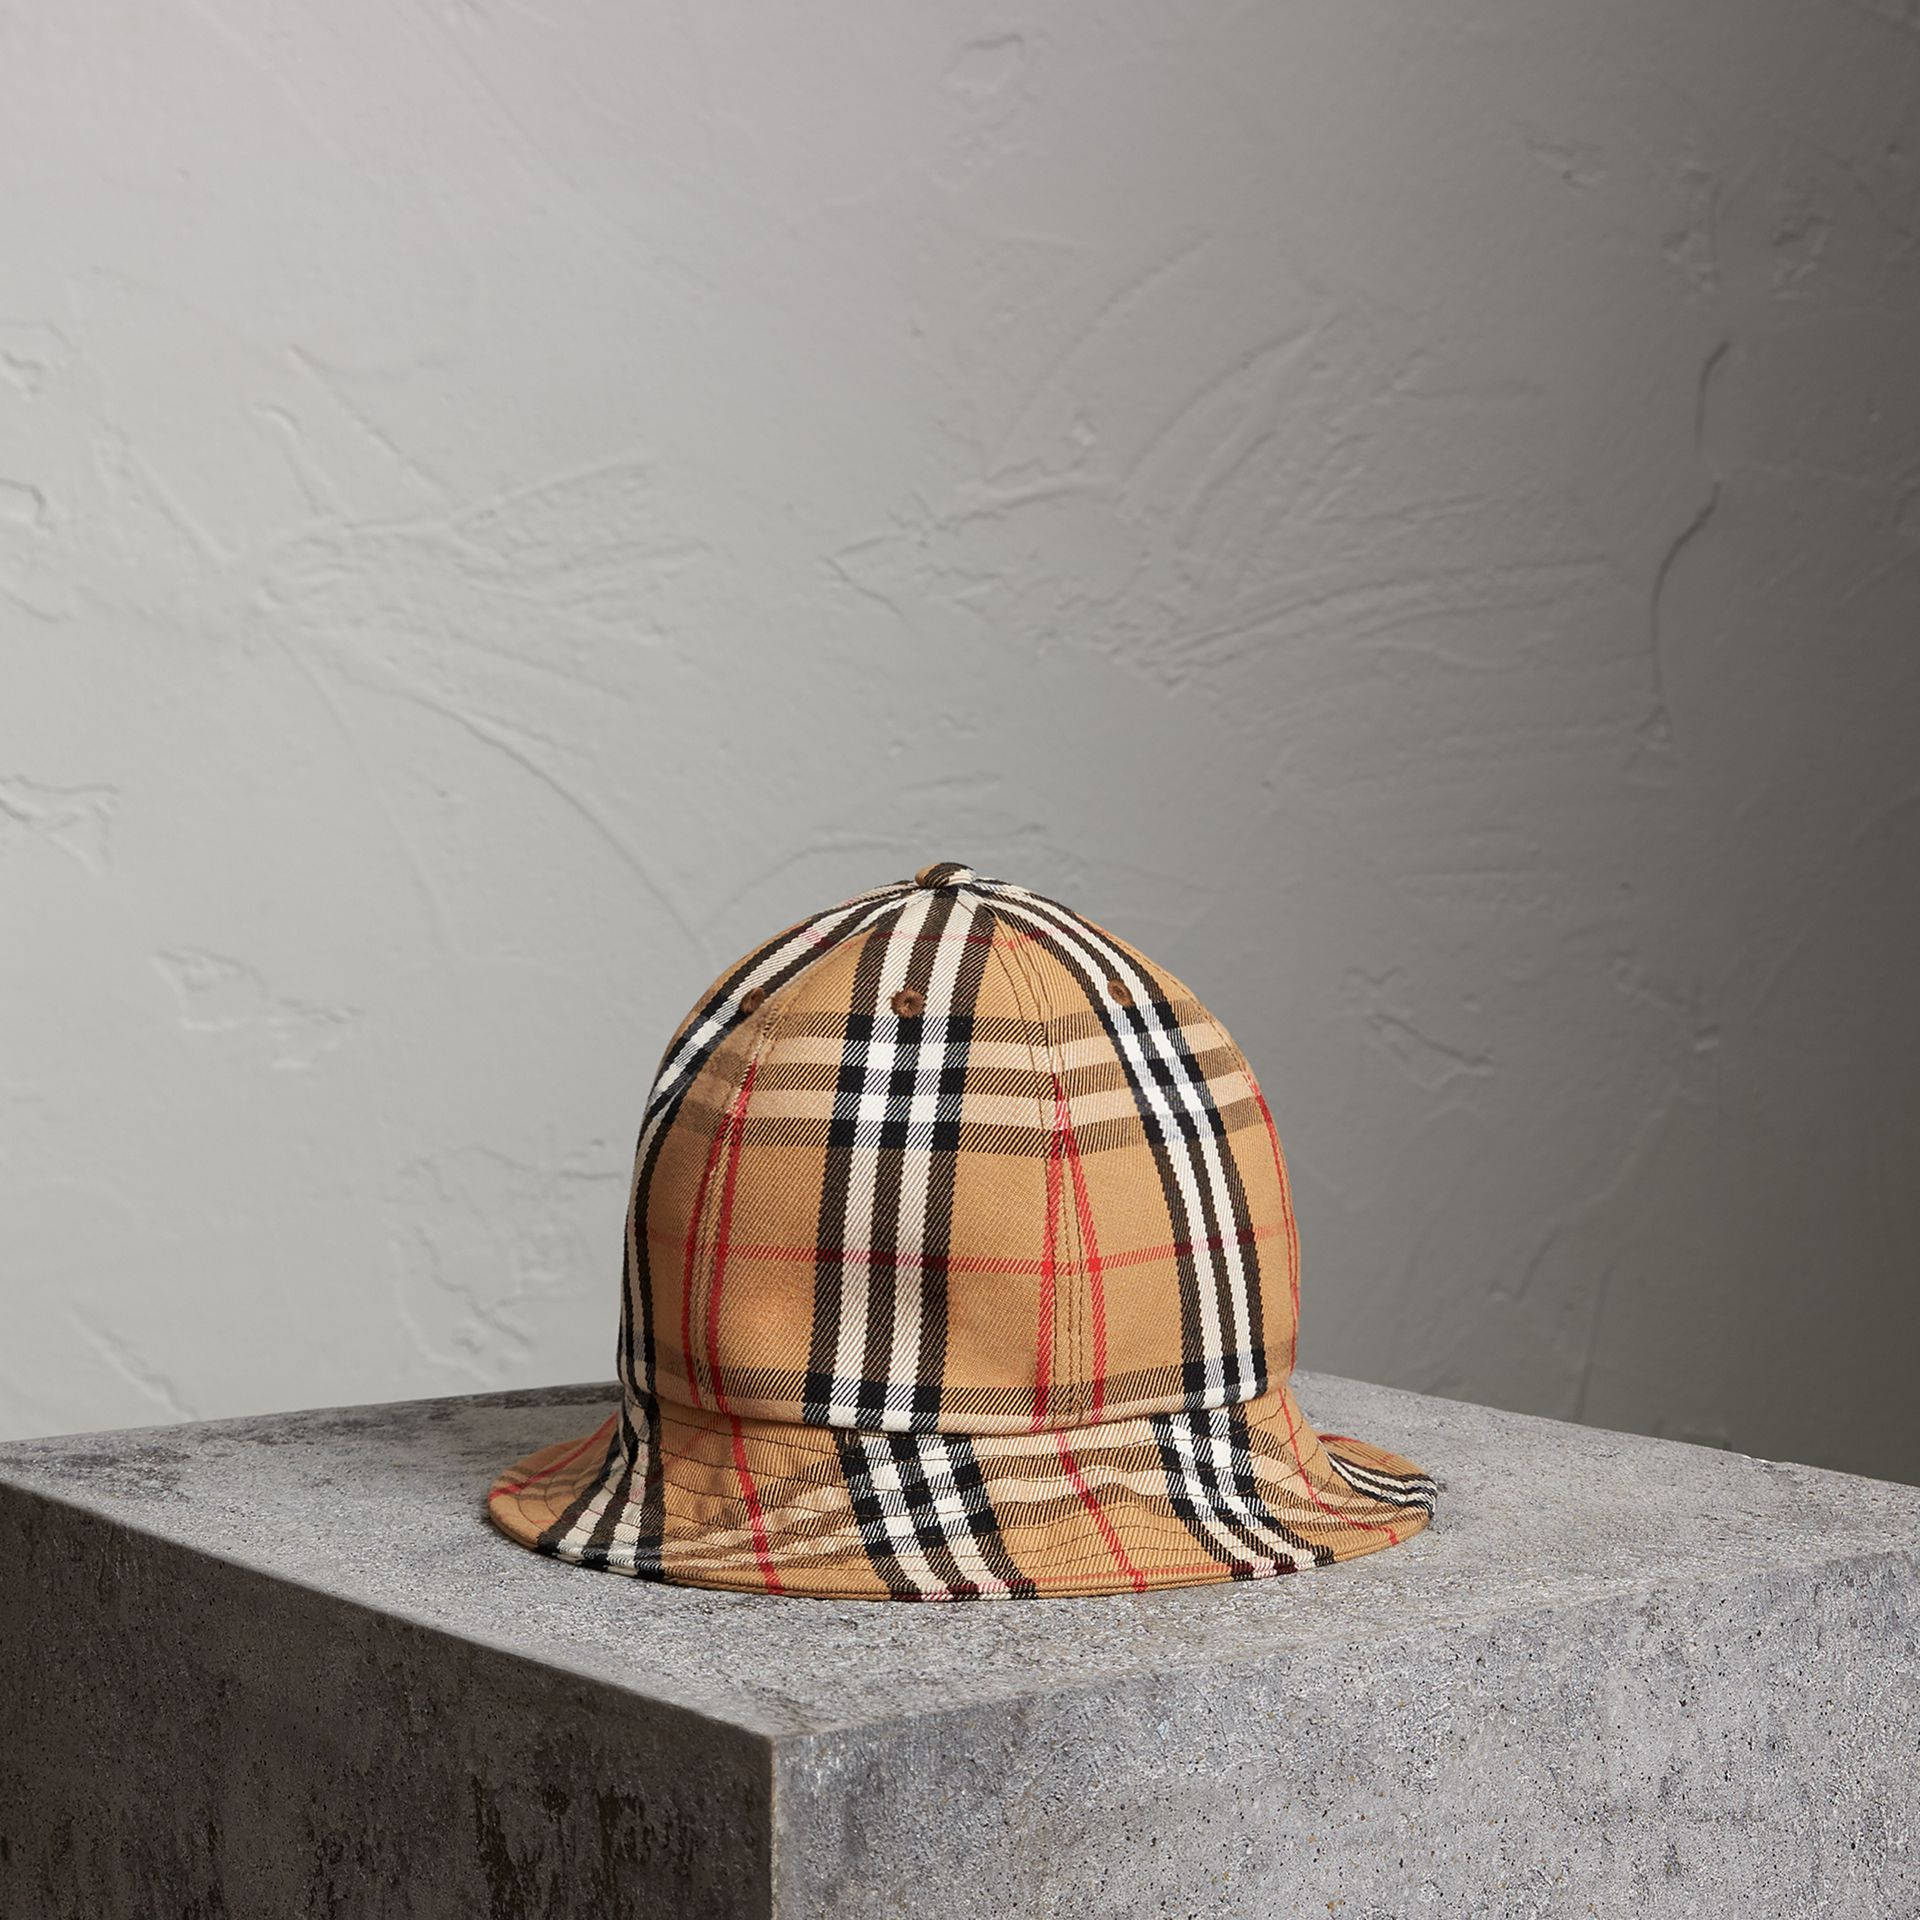 Burberry Vintage Check Bucket Hat In Antique Yellow  896e29a16fa